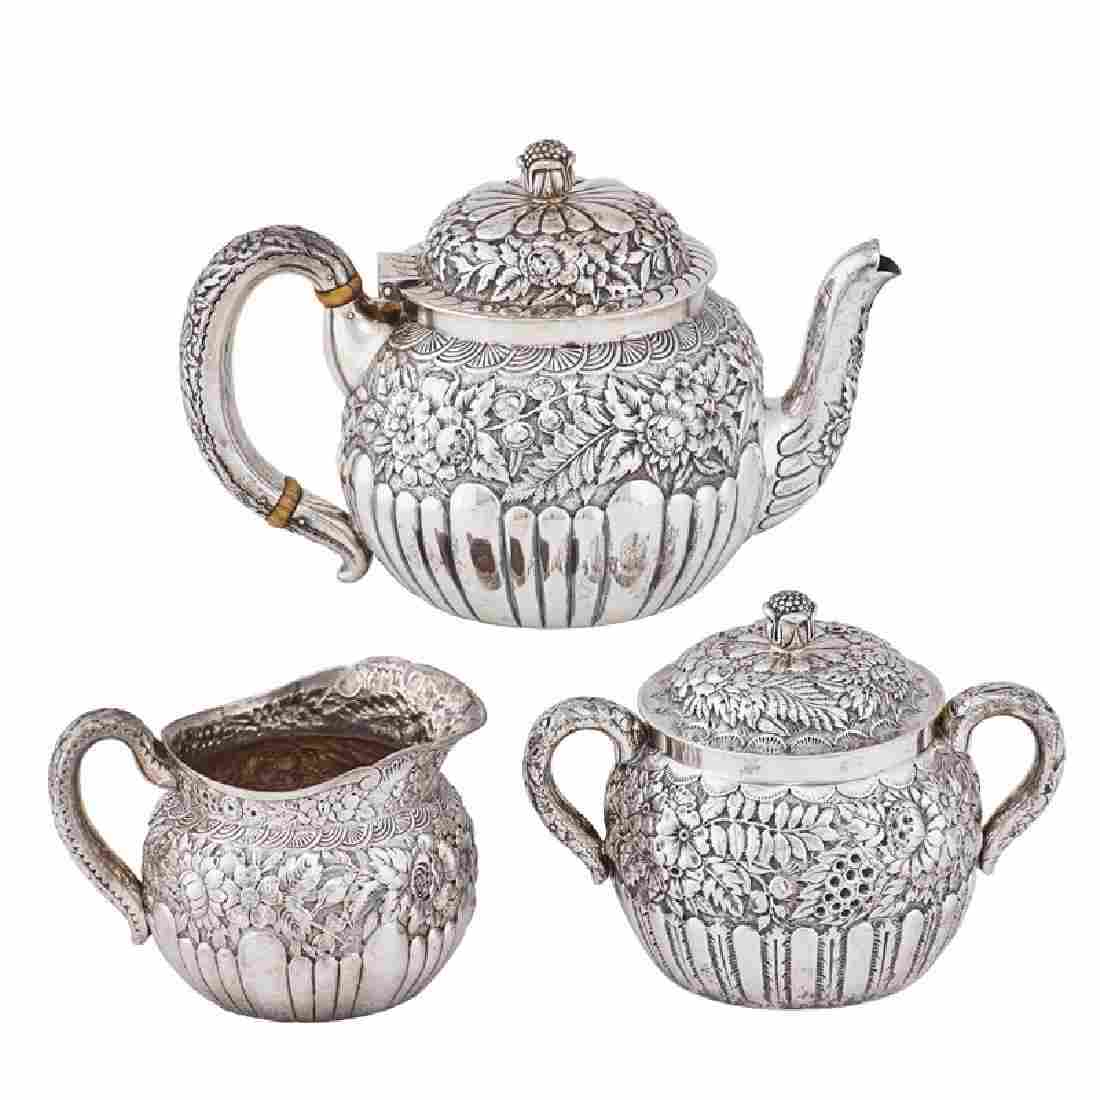 TIFFANY & CO. STERLING SILVER TEA SET